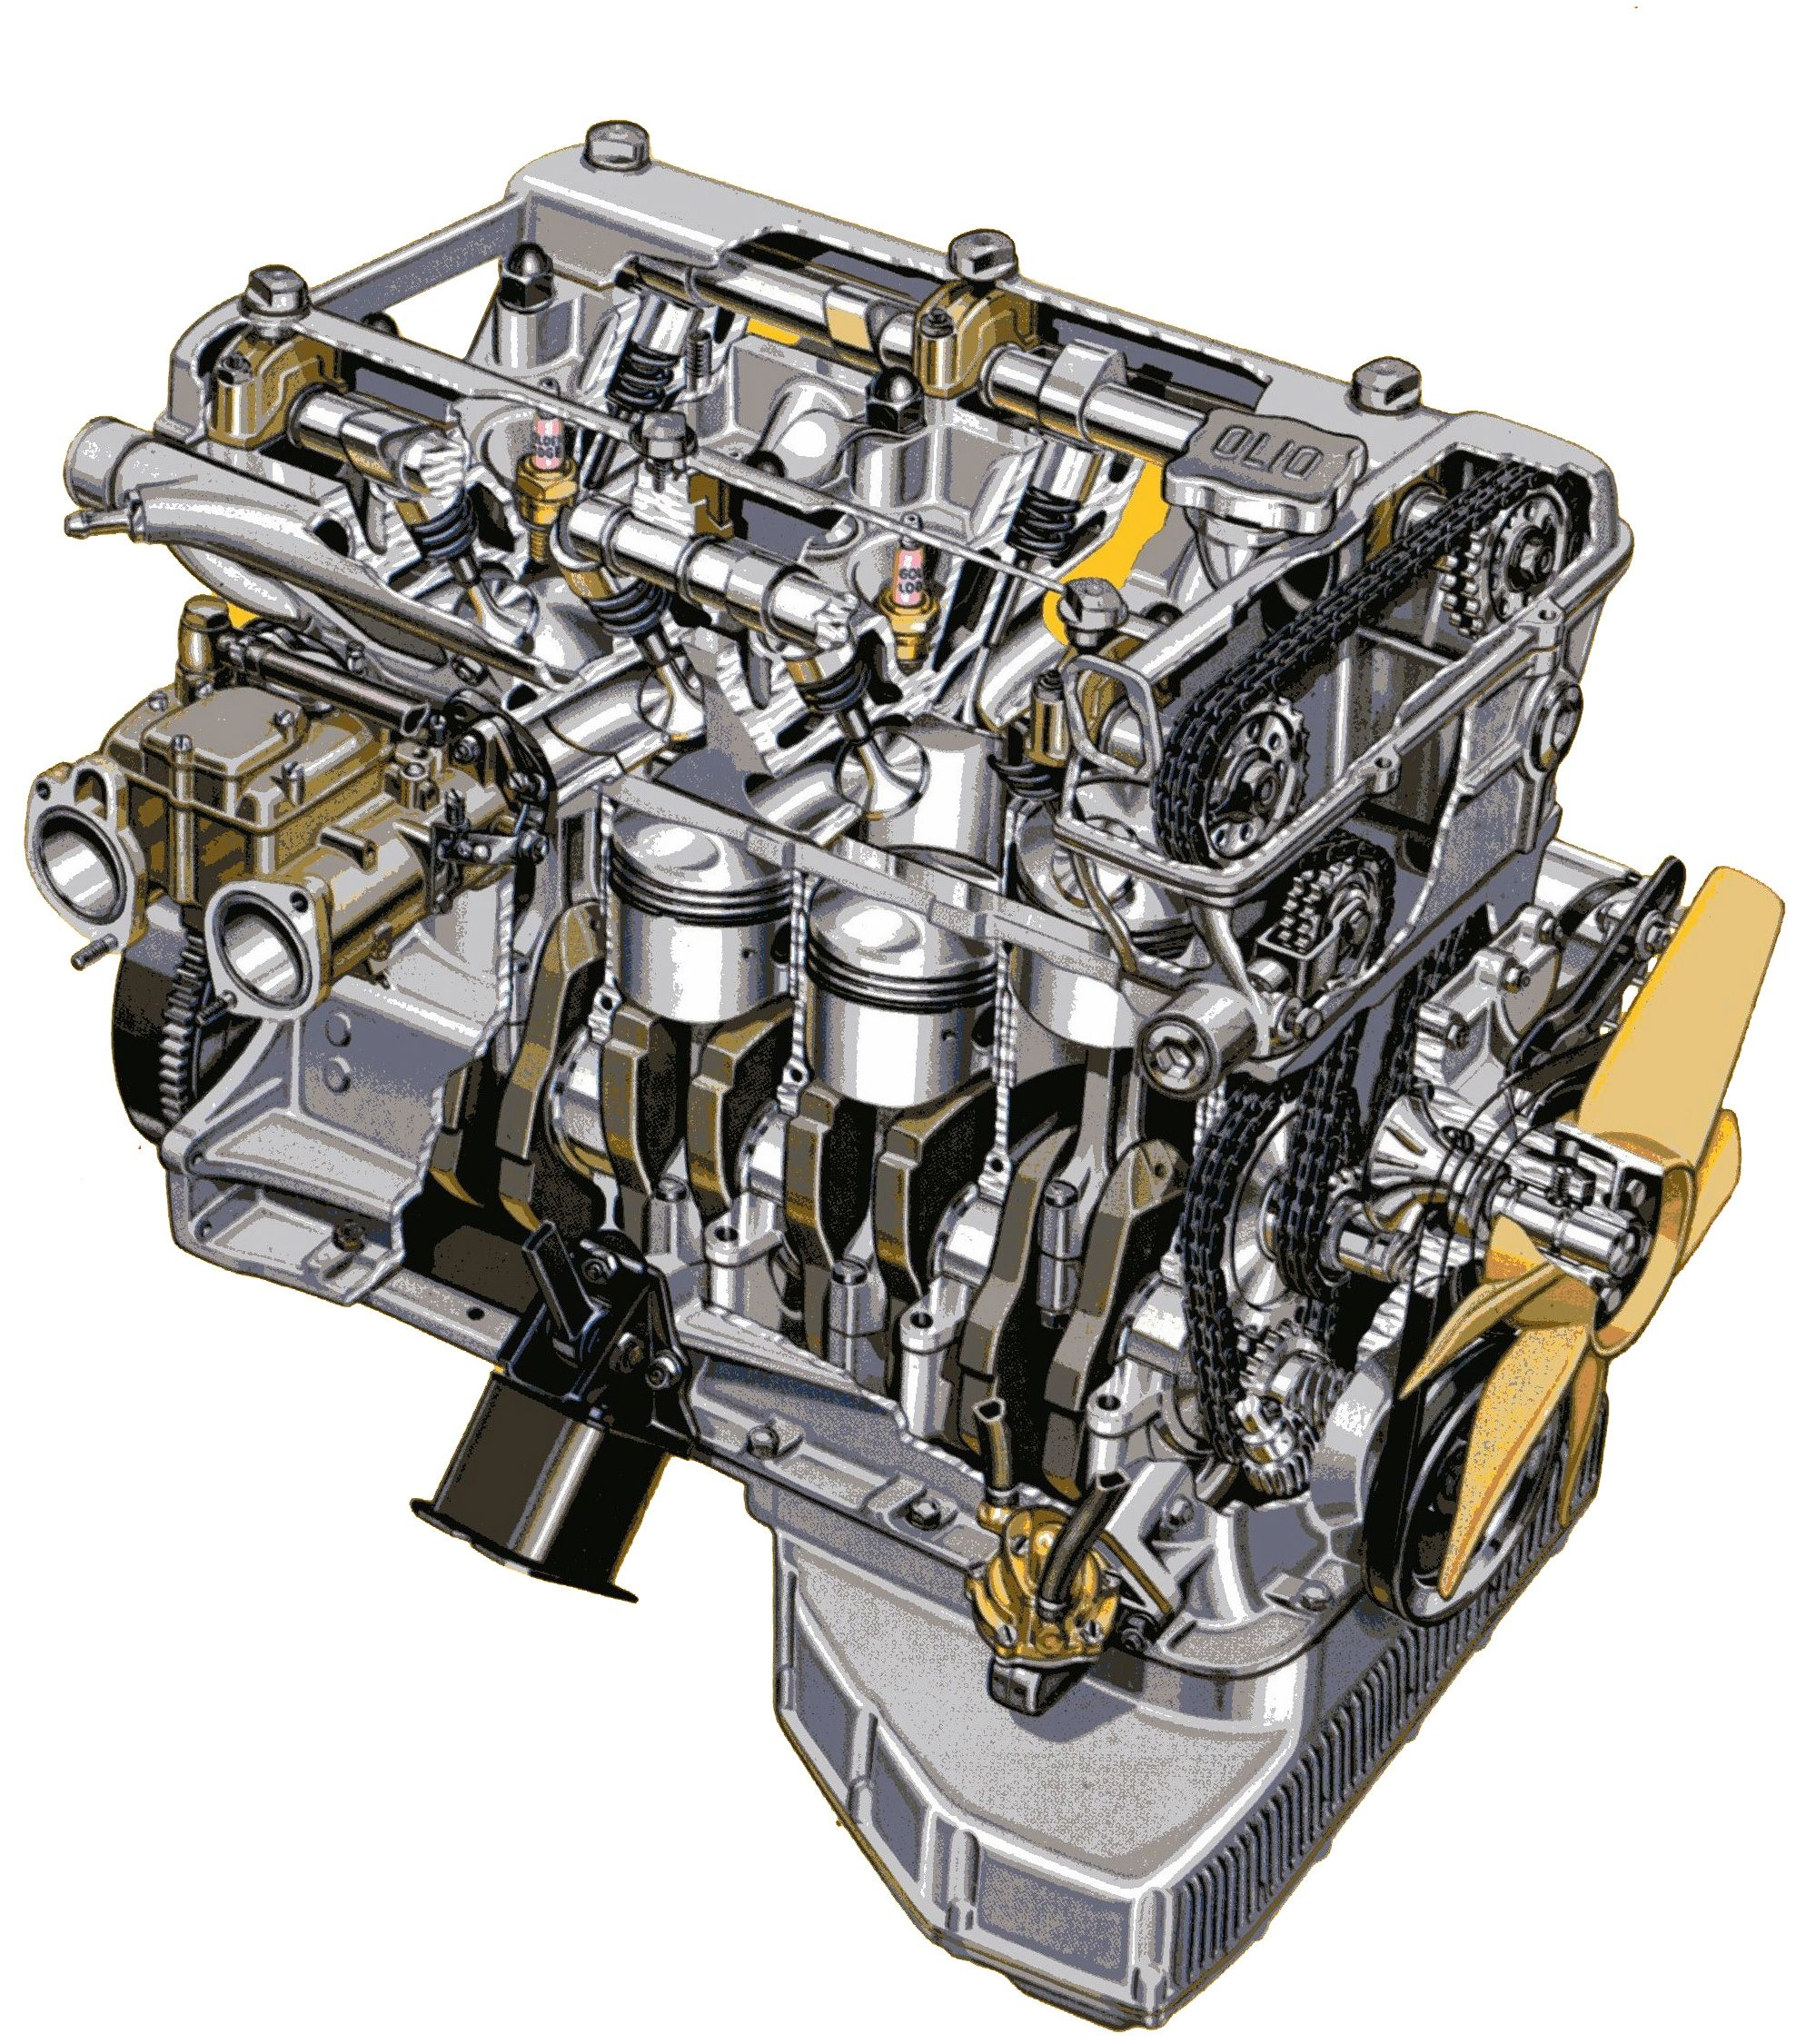 medium resolution of spider alfa romeo nord engine diagram simple wiring diagrams shankle alfa romeo spider alfa romeo nord engine diagram